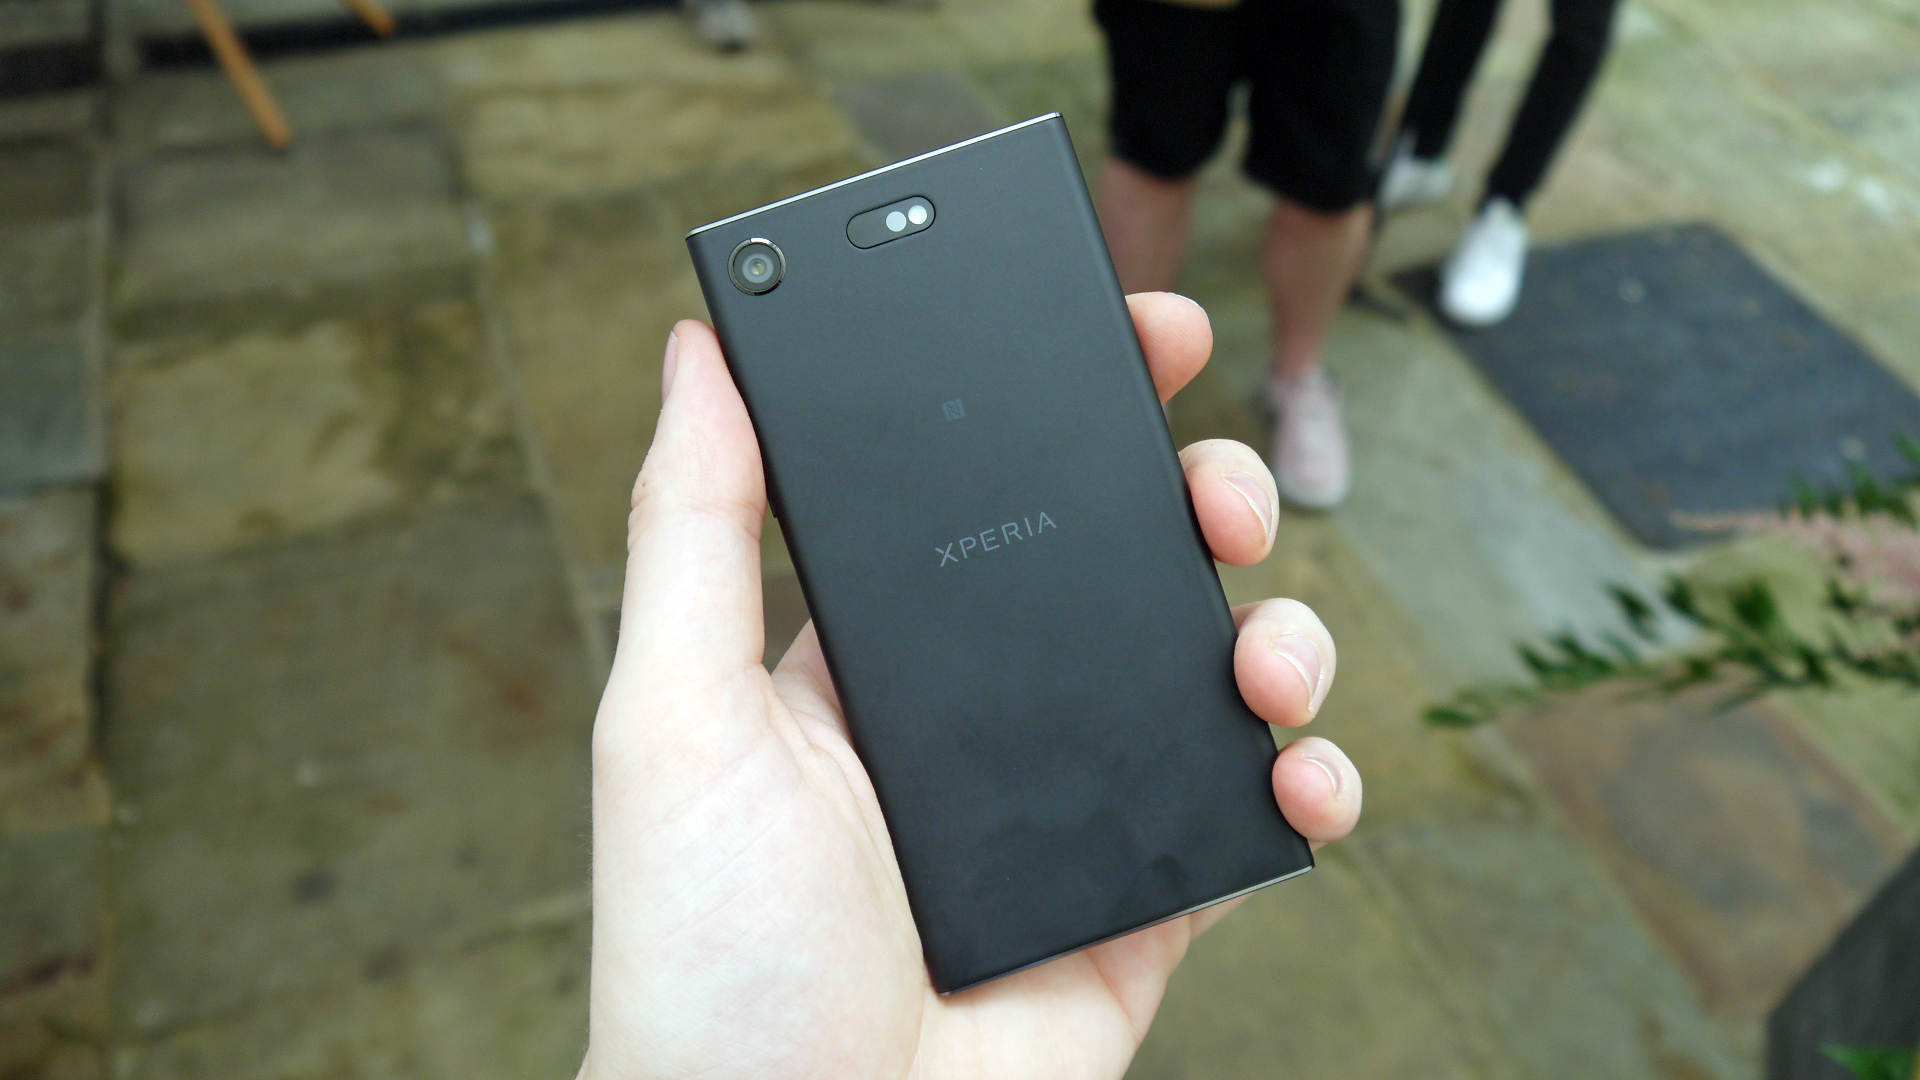 Sony Xperia Compact fans get ready – new handset teased for